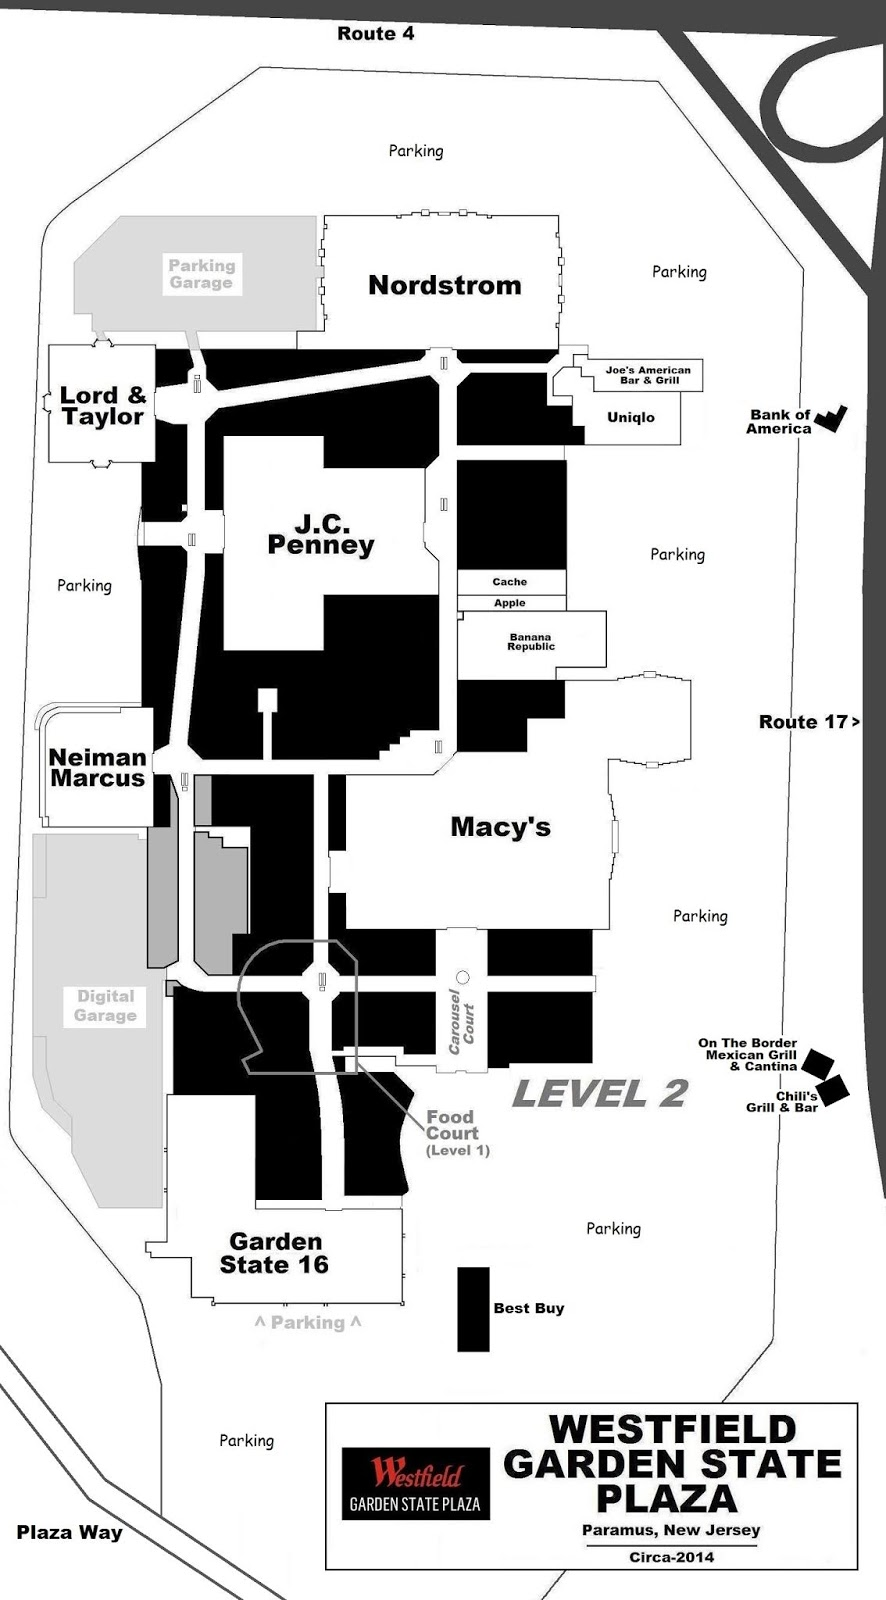 MALL HALL OF FAME Garden State Plaza Store Map on valley fair store map, garden state shooting, lenox square store map, houston galleria store map, lloyd center store map, towson town center store map, glendale galleria store map, southcenter store map, polaris fashion place store map, sawgrass mills store map, westfield garden state plaza map, bellevue square store map,